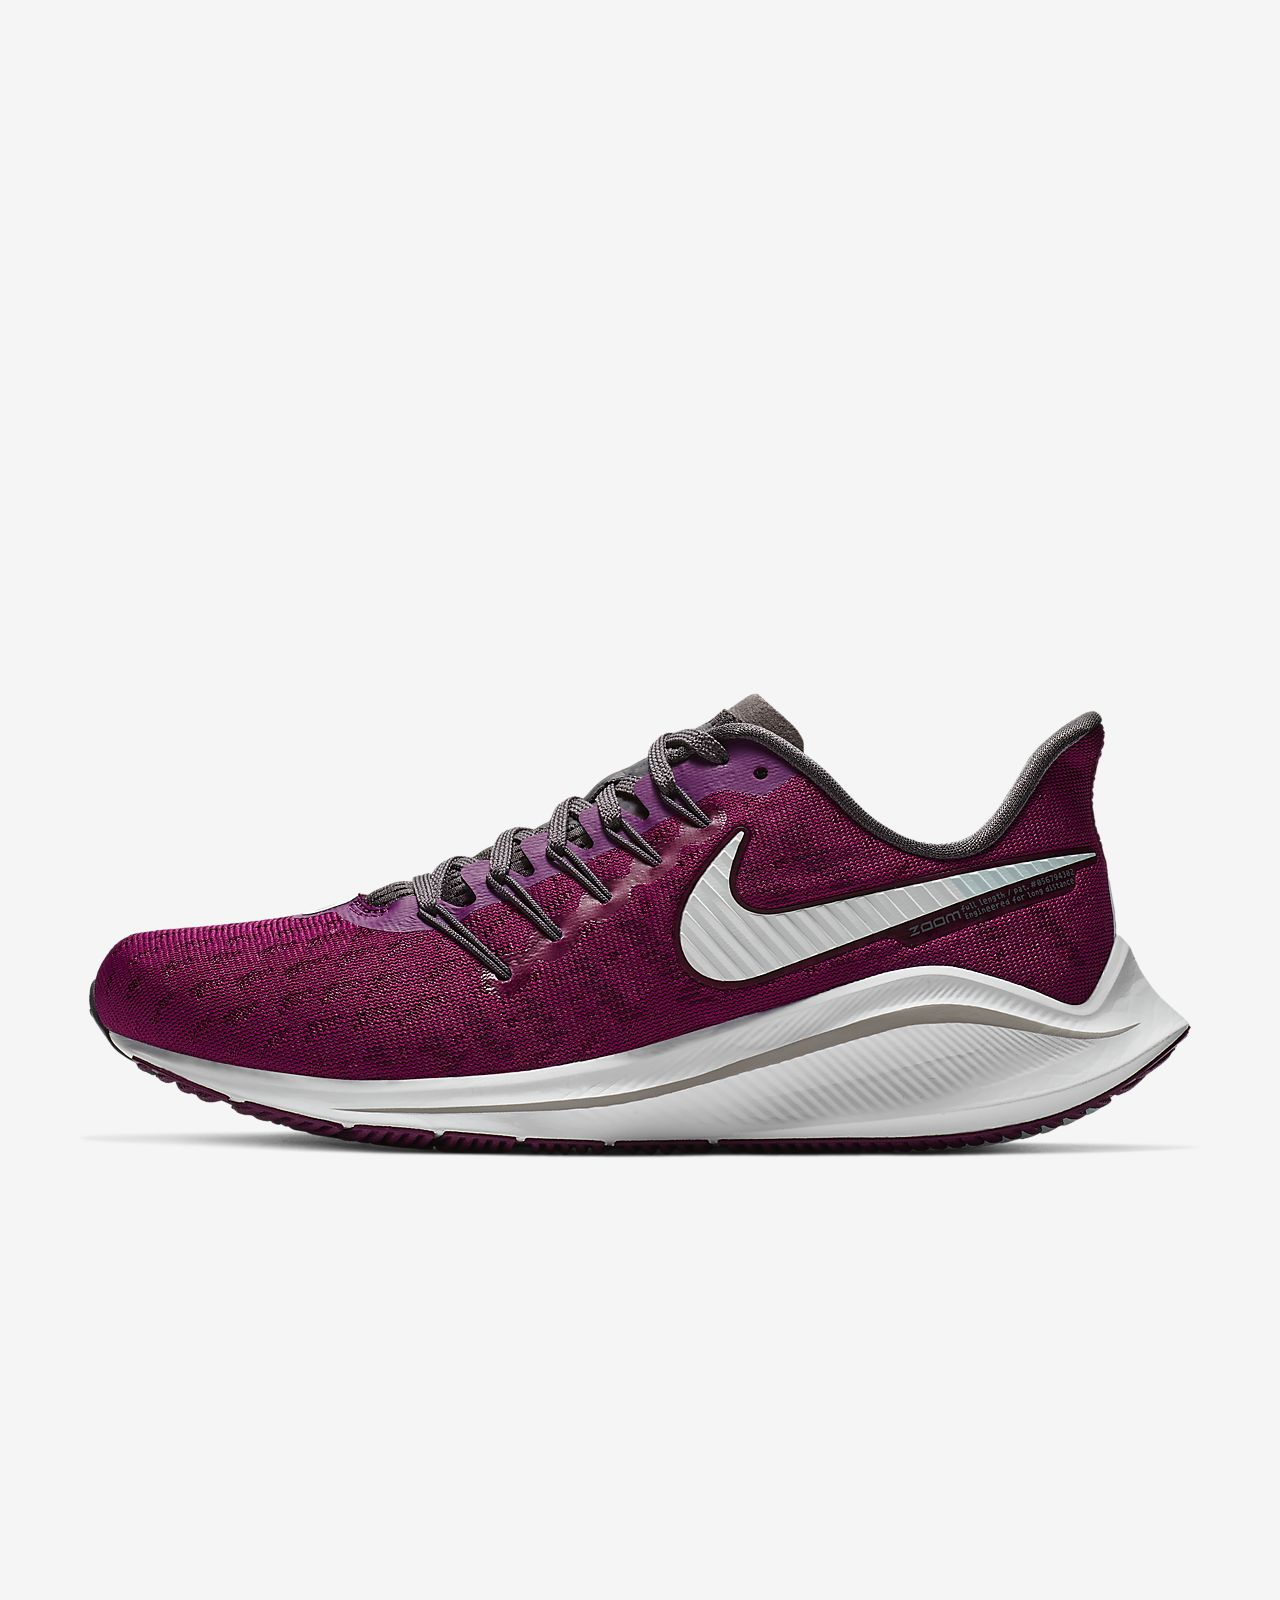 Nike Air Zoom Vomero 14 Pink White Shoes Best Price AH7858 600